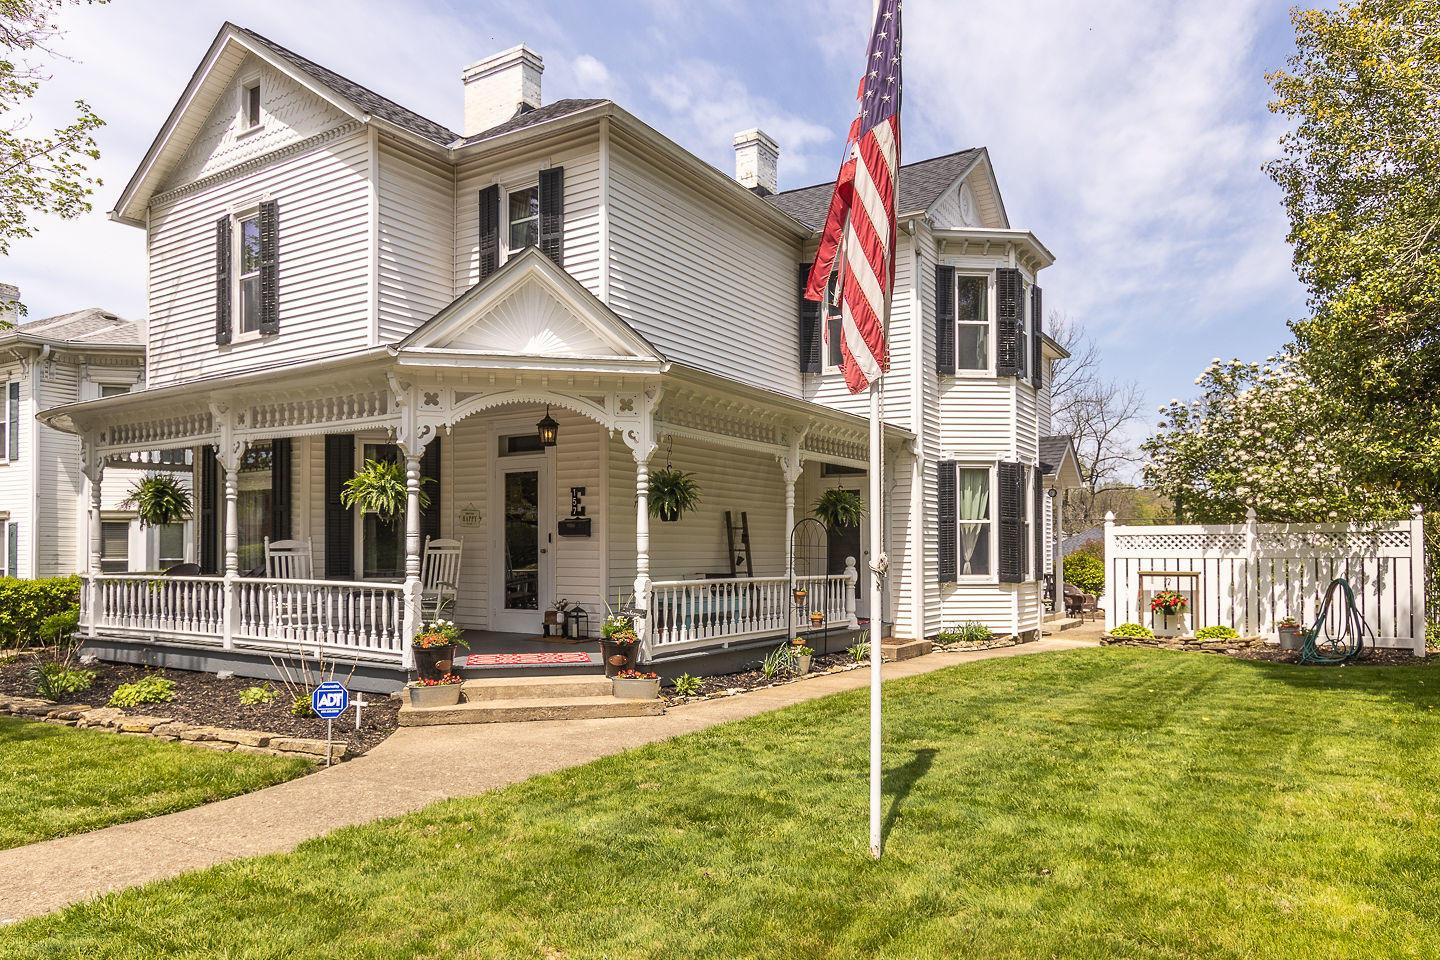 157 King Street, Lancaster, Ohio 43130, 4 Bedrooms Bedrooms, ,3 BathroomsBathrooms,Residential,For Sale,King,220017387